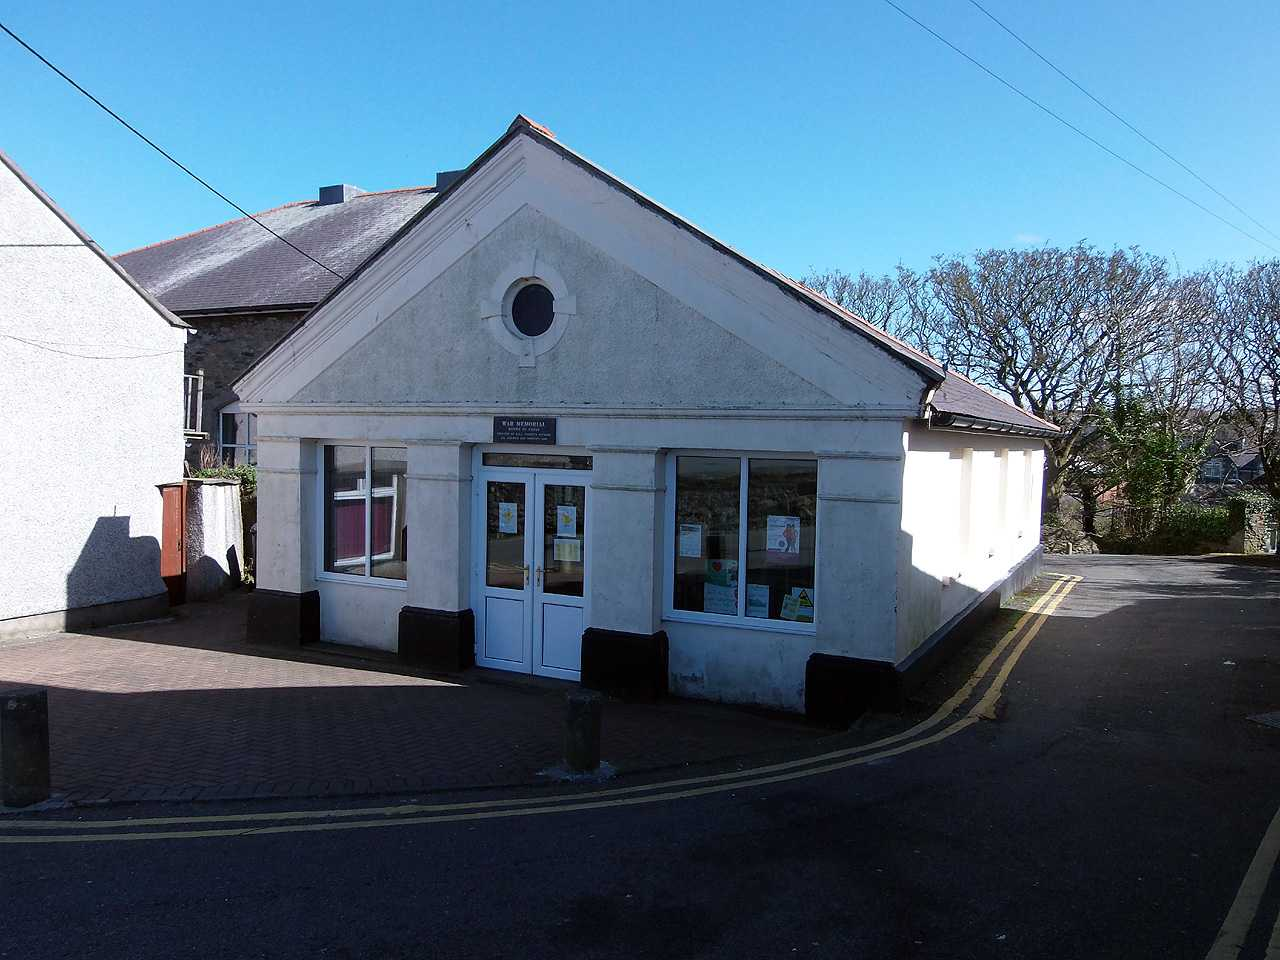 Anglesey, Amlwch War Memorial Hall